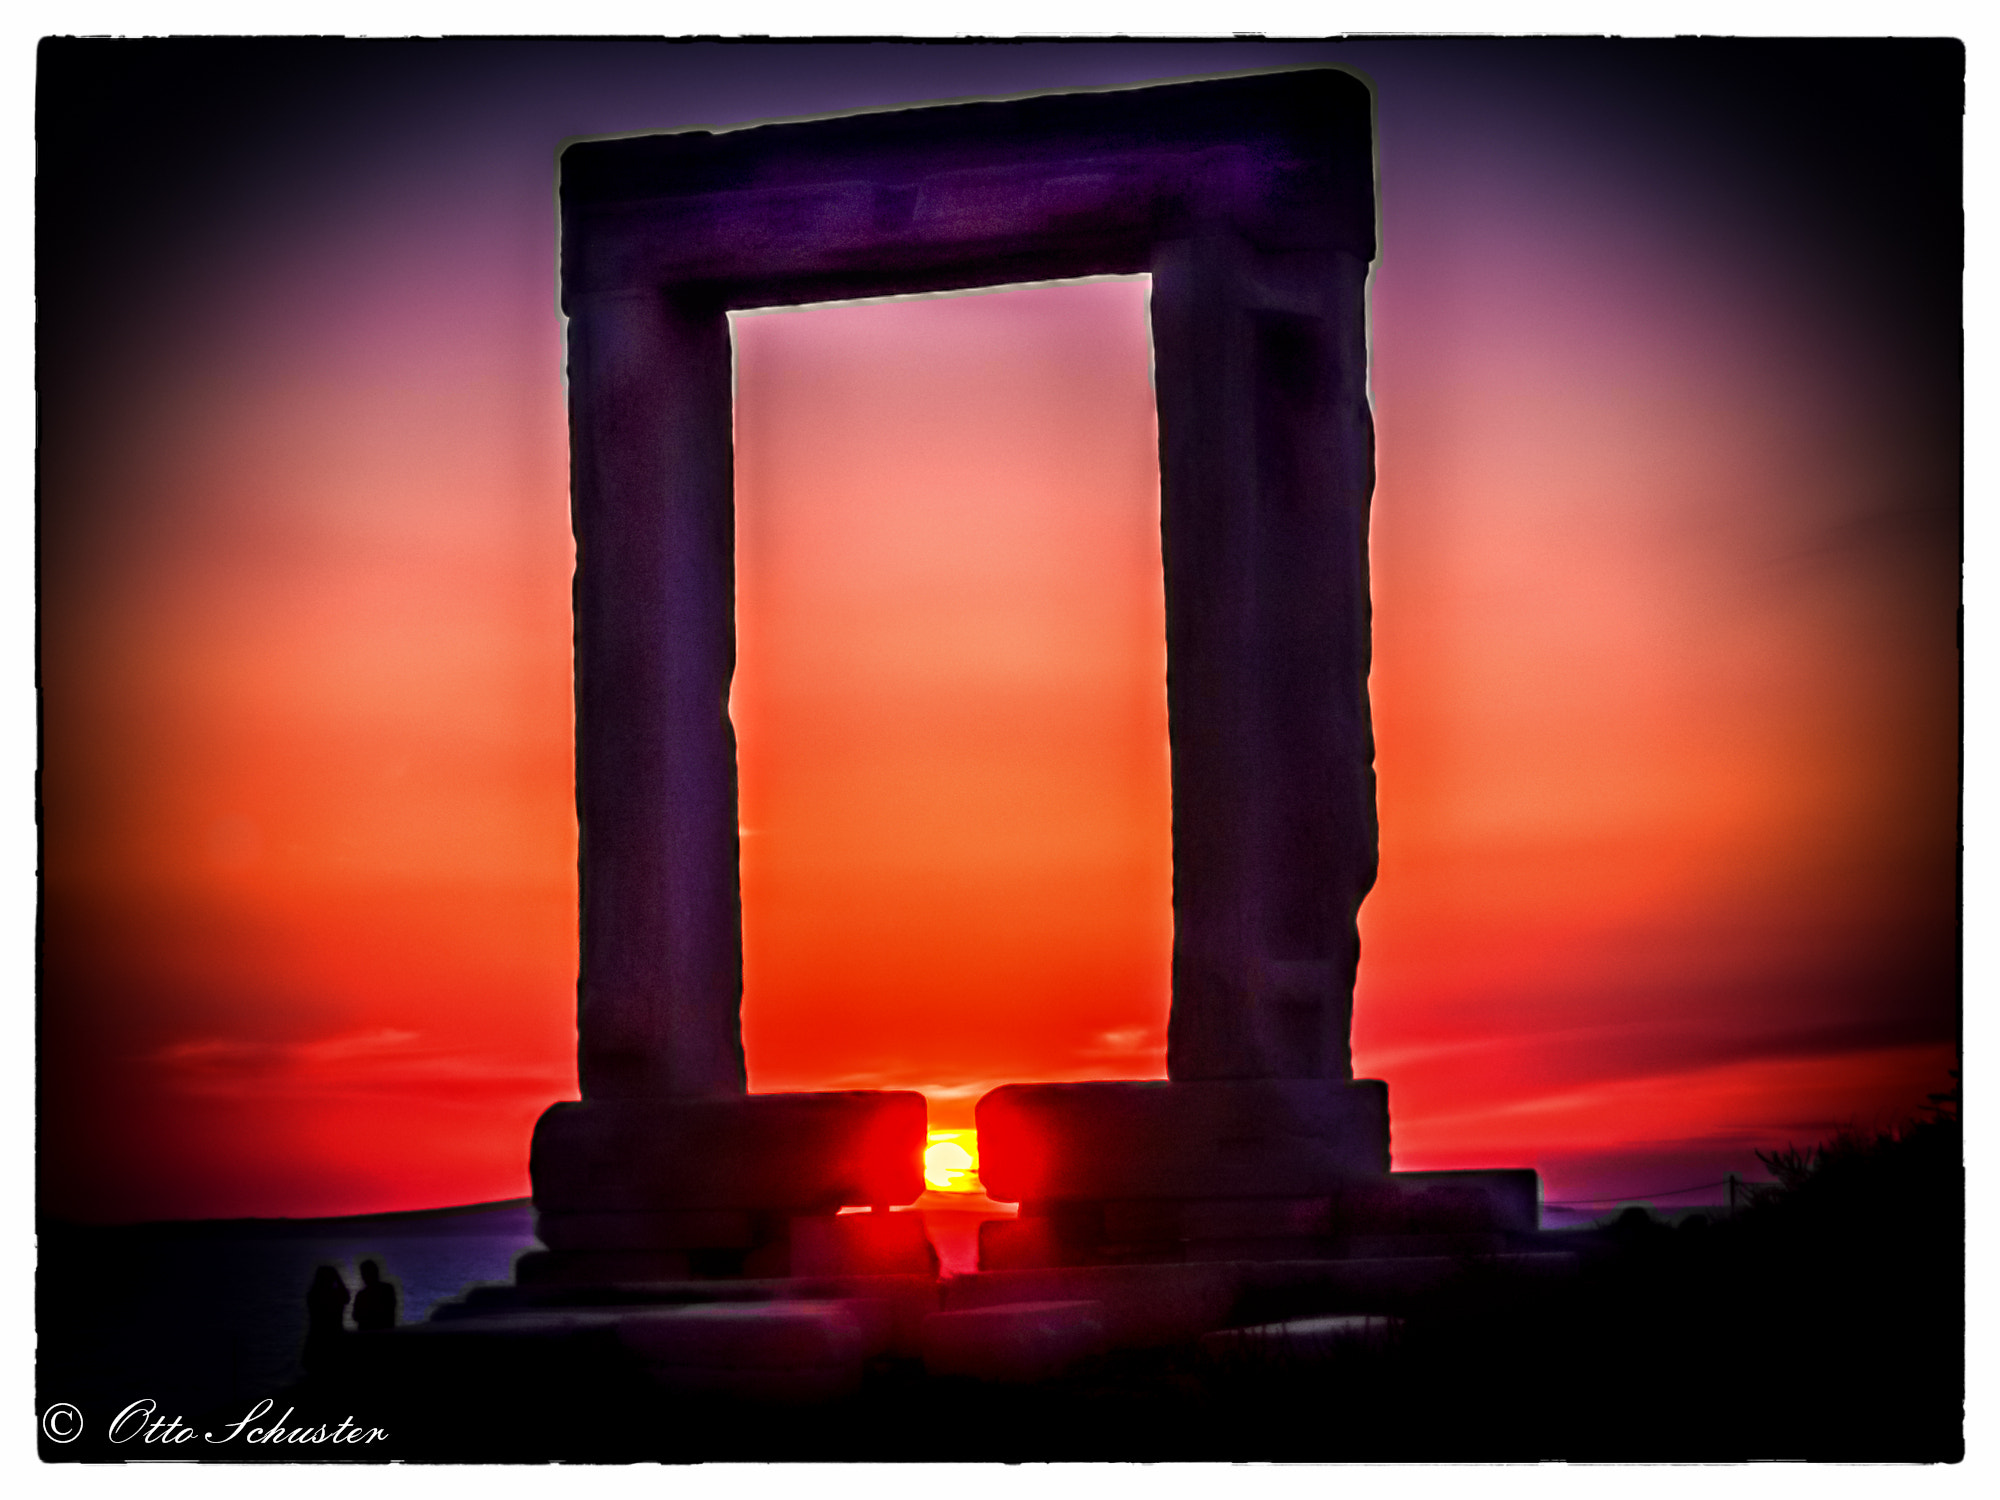 Photograph Naxos, Portara by Otto Schuster on 500px